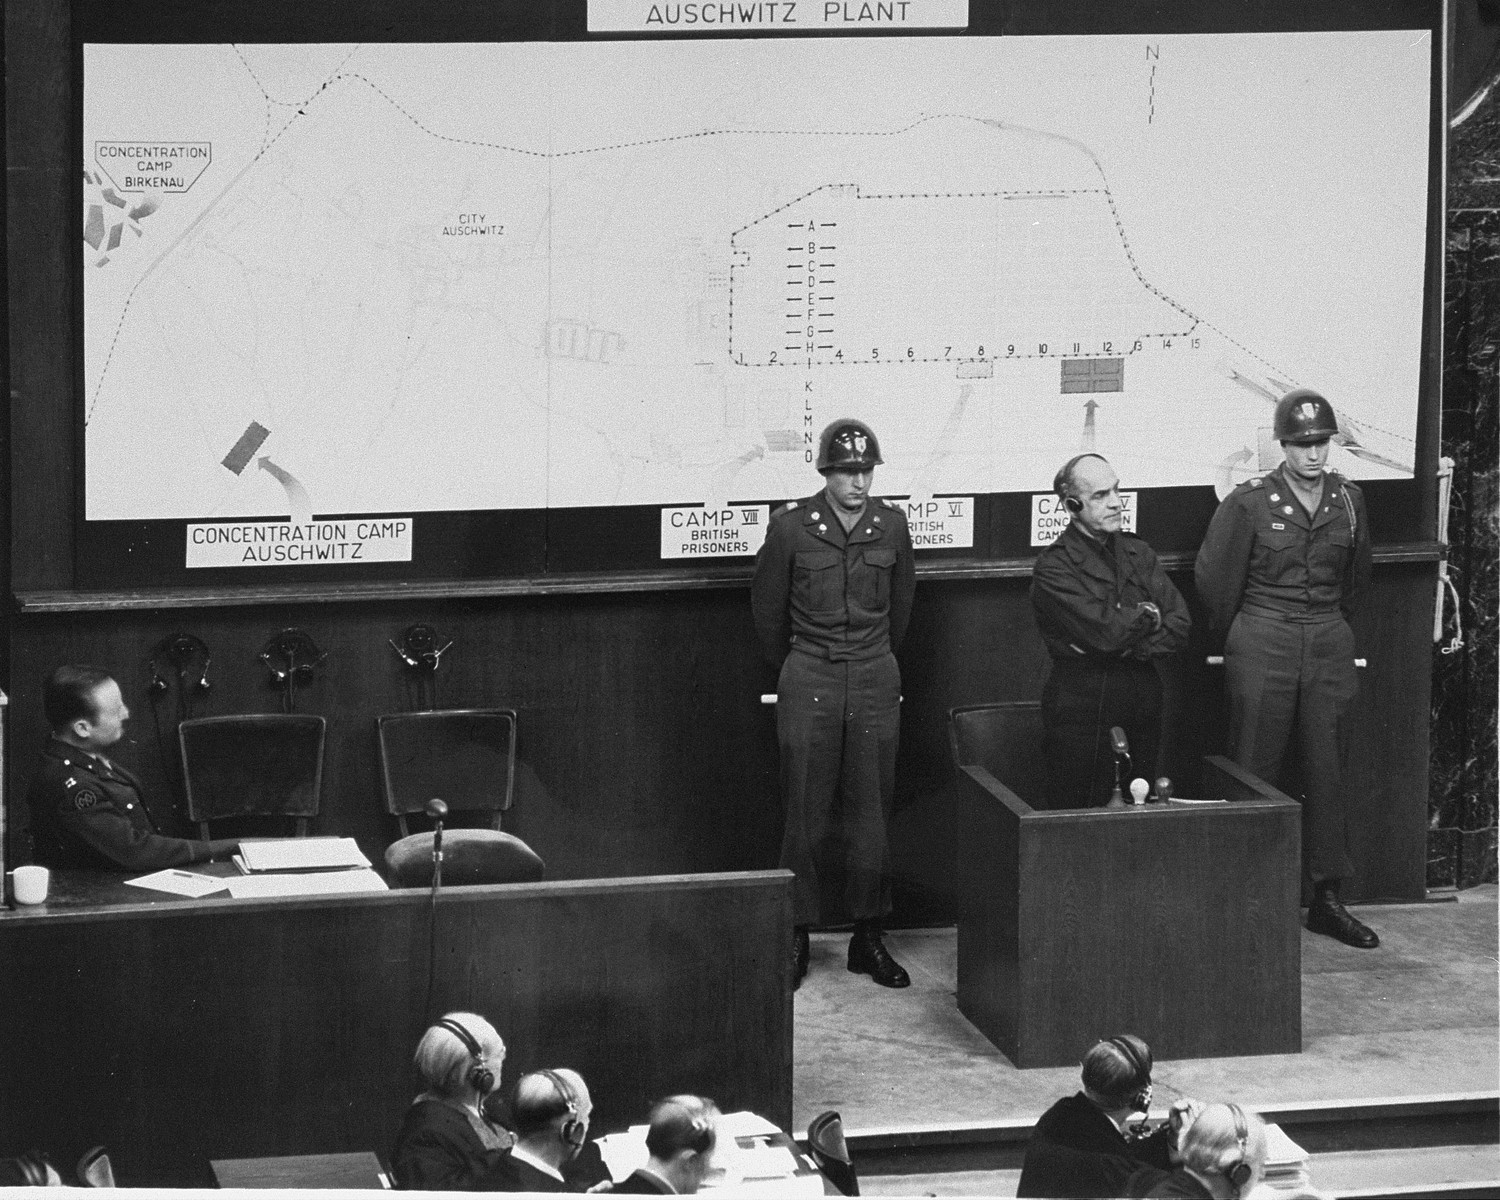 Oswald Pohl testifies on the witness stand during the I.G. Farben Trial in Nuremberg.  Pohl, the former chief of the SS Economic and Administrative Main Office, was convicted by an American Military Tribunal during the Pohl/WVHA Trial in Nuremberg.  While he awaited execution he was called to testify in the I.G. Farben Trial.  To prevent violence or suicide Pohl was handcuffed and flanked by American military guards.  Pohl's testimony confirmed I.G. Farben's use of concentration camp inmates for slave labor.